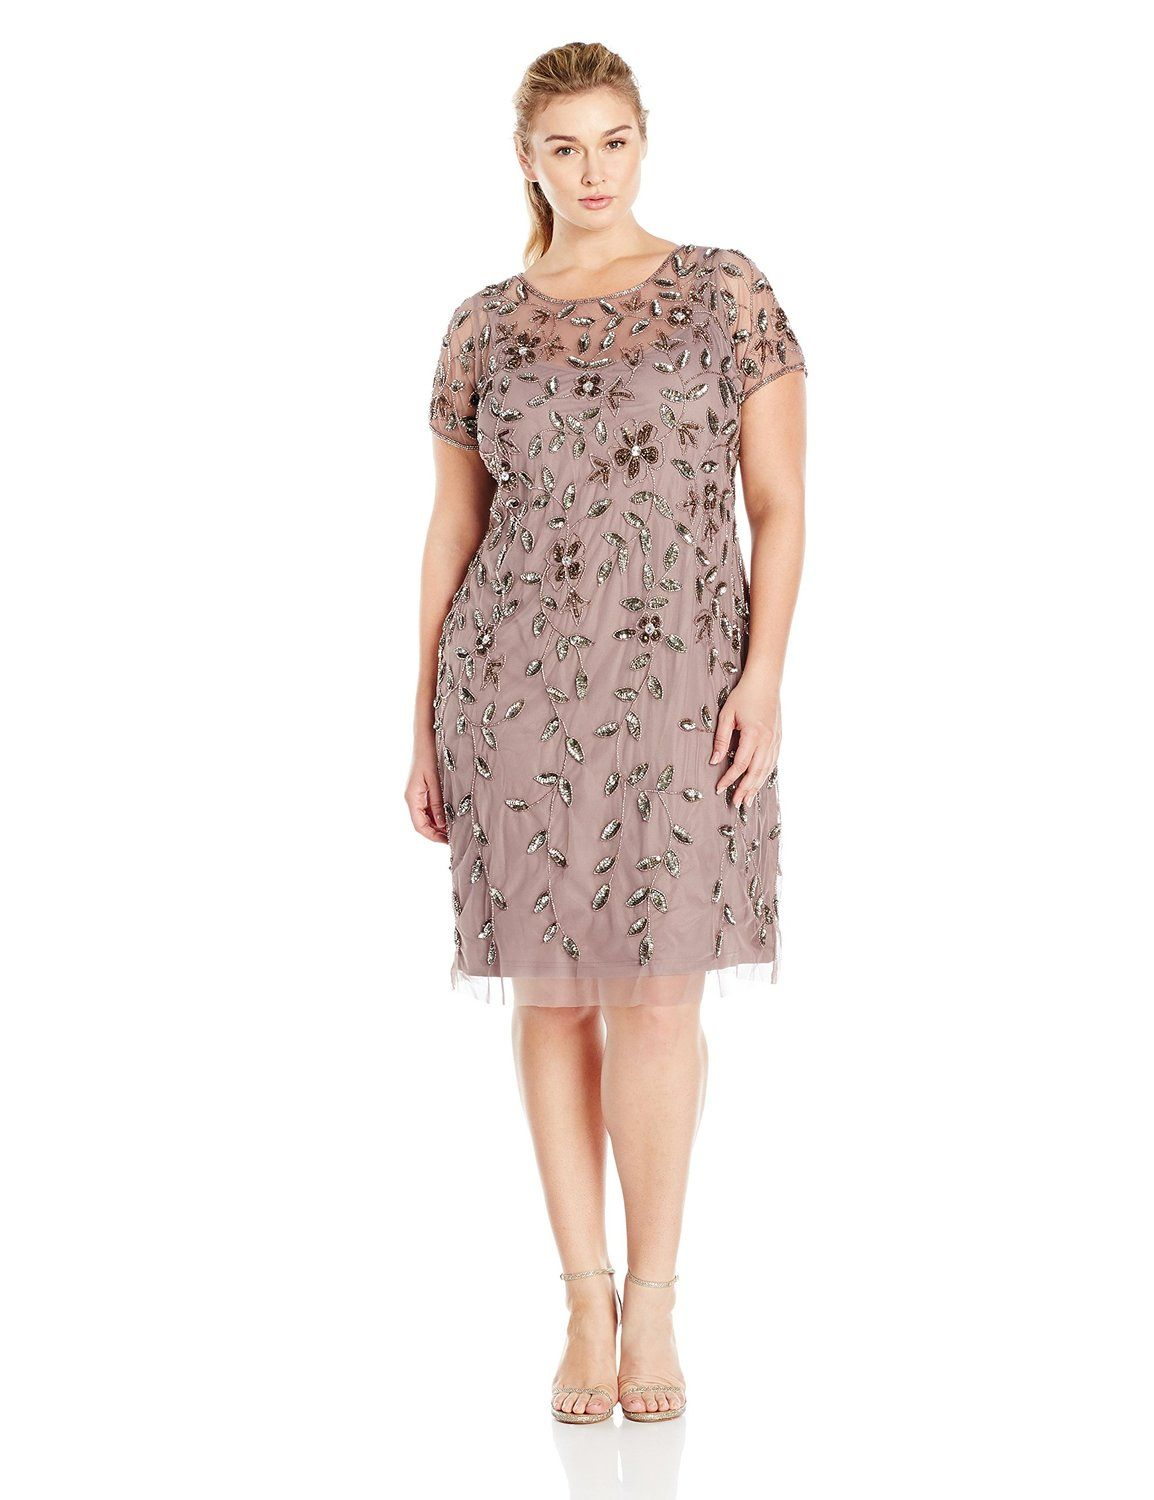 2f6304c0dc8d7 Adrianna Papell Women s Plus-Size Short Sleeve Beaded Cocktail Dress    To  view further